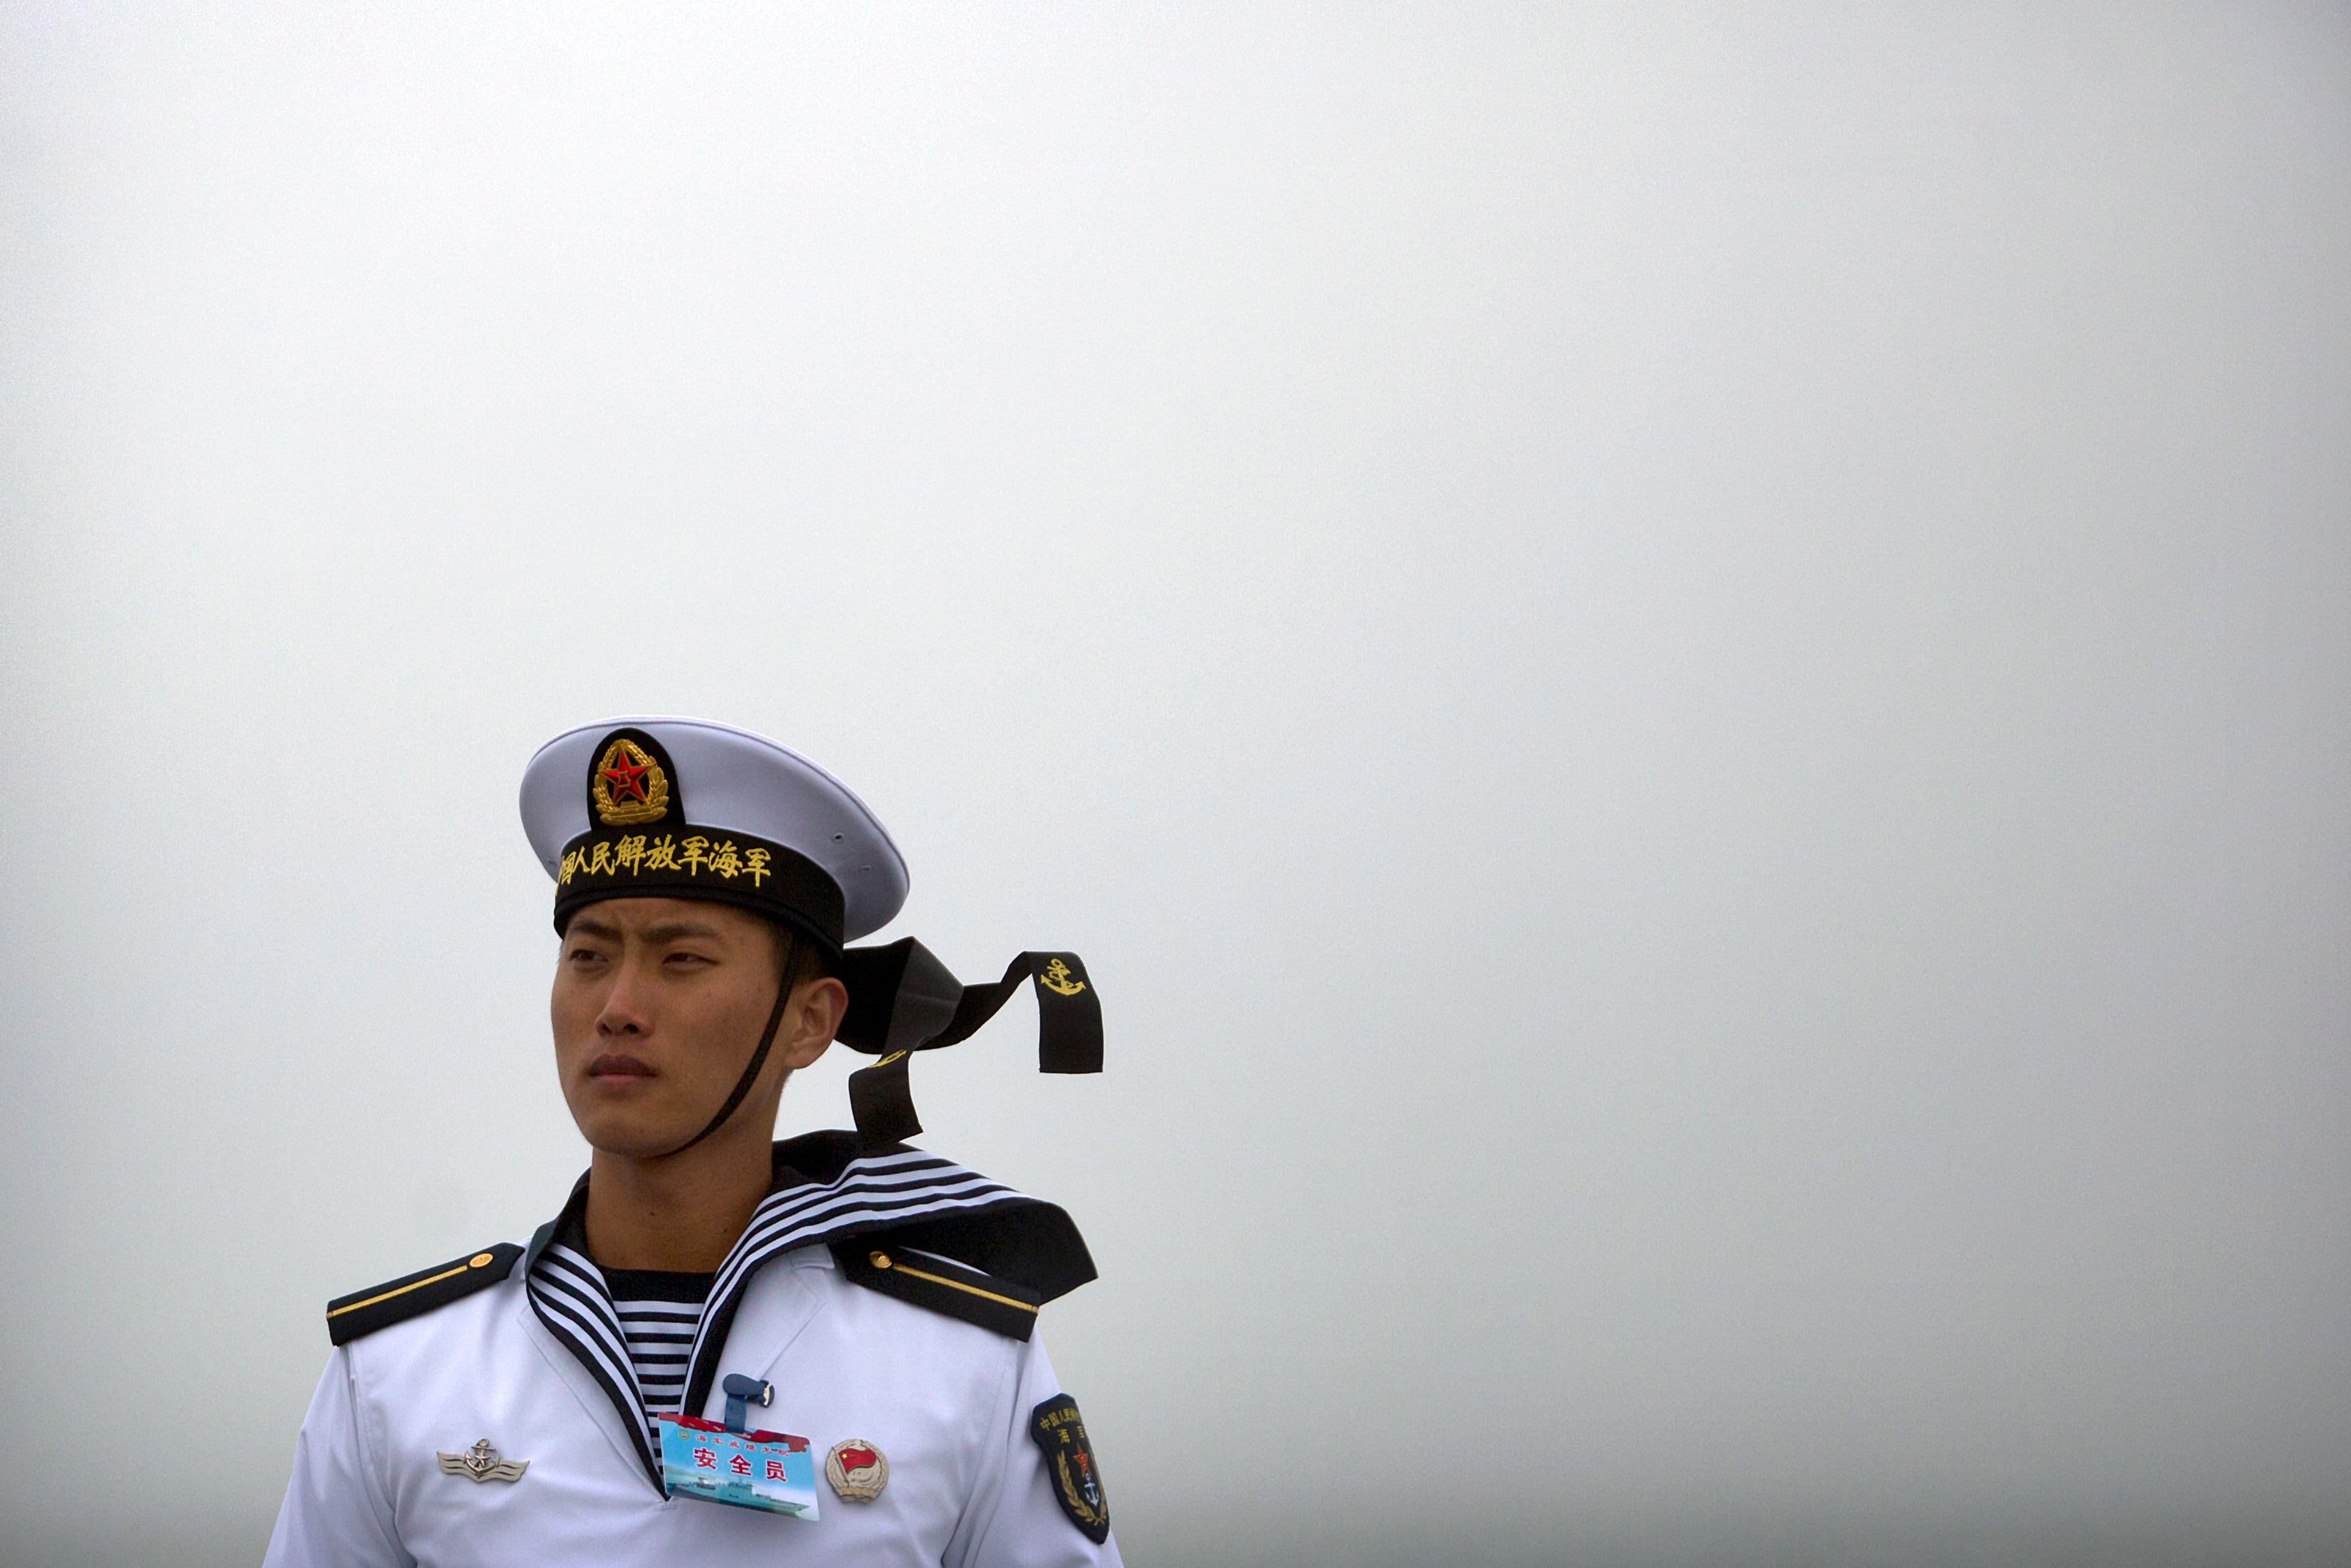 Pentagon condemns 'truly disturbing' Chinese missile tests in South China Sea